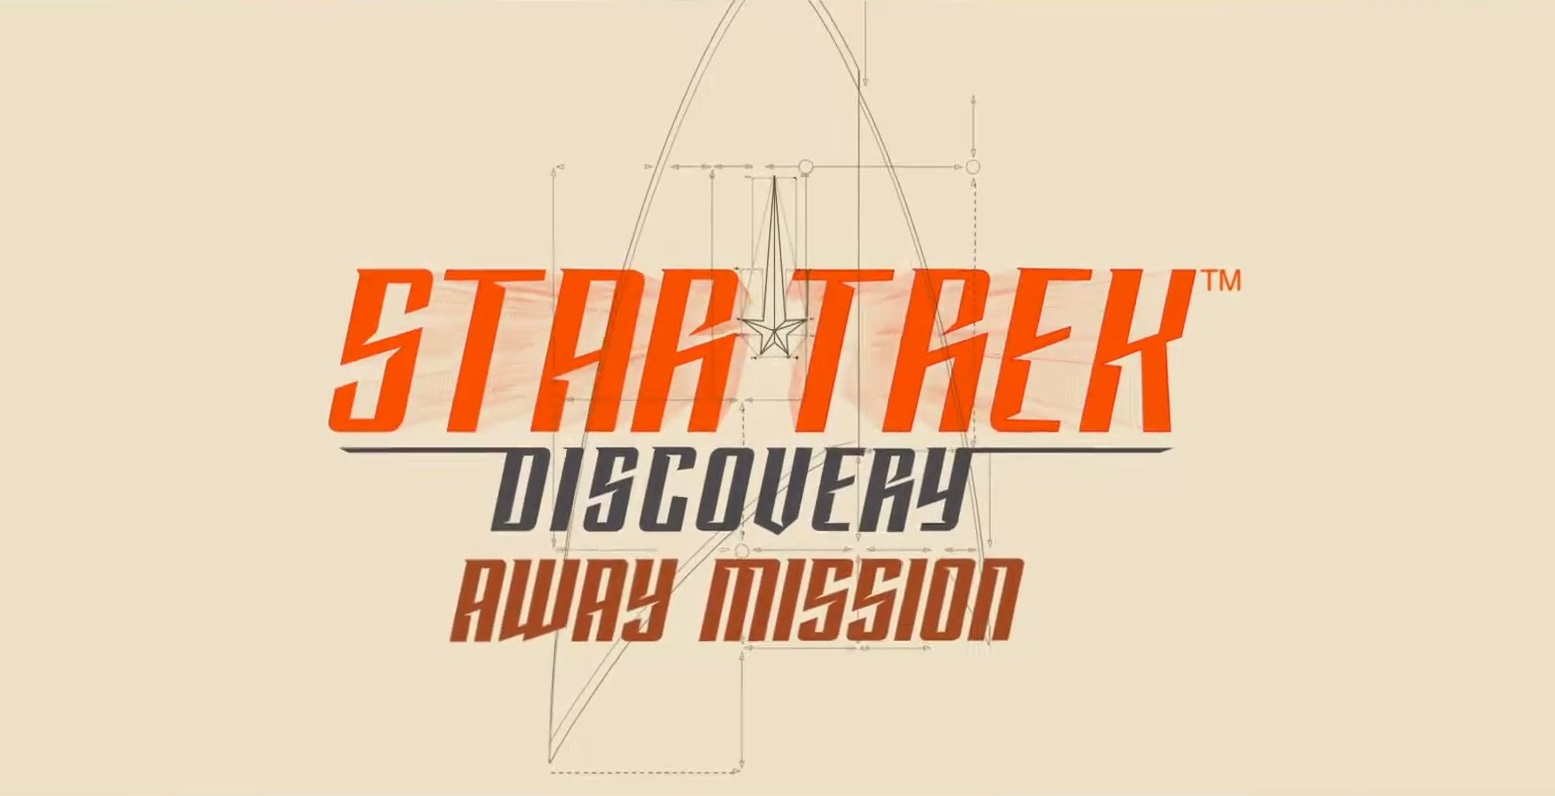 Star Trek Discovery Away Mission